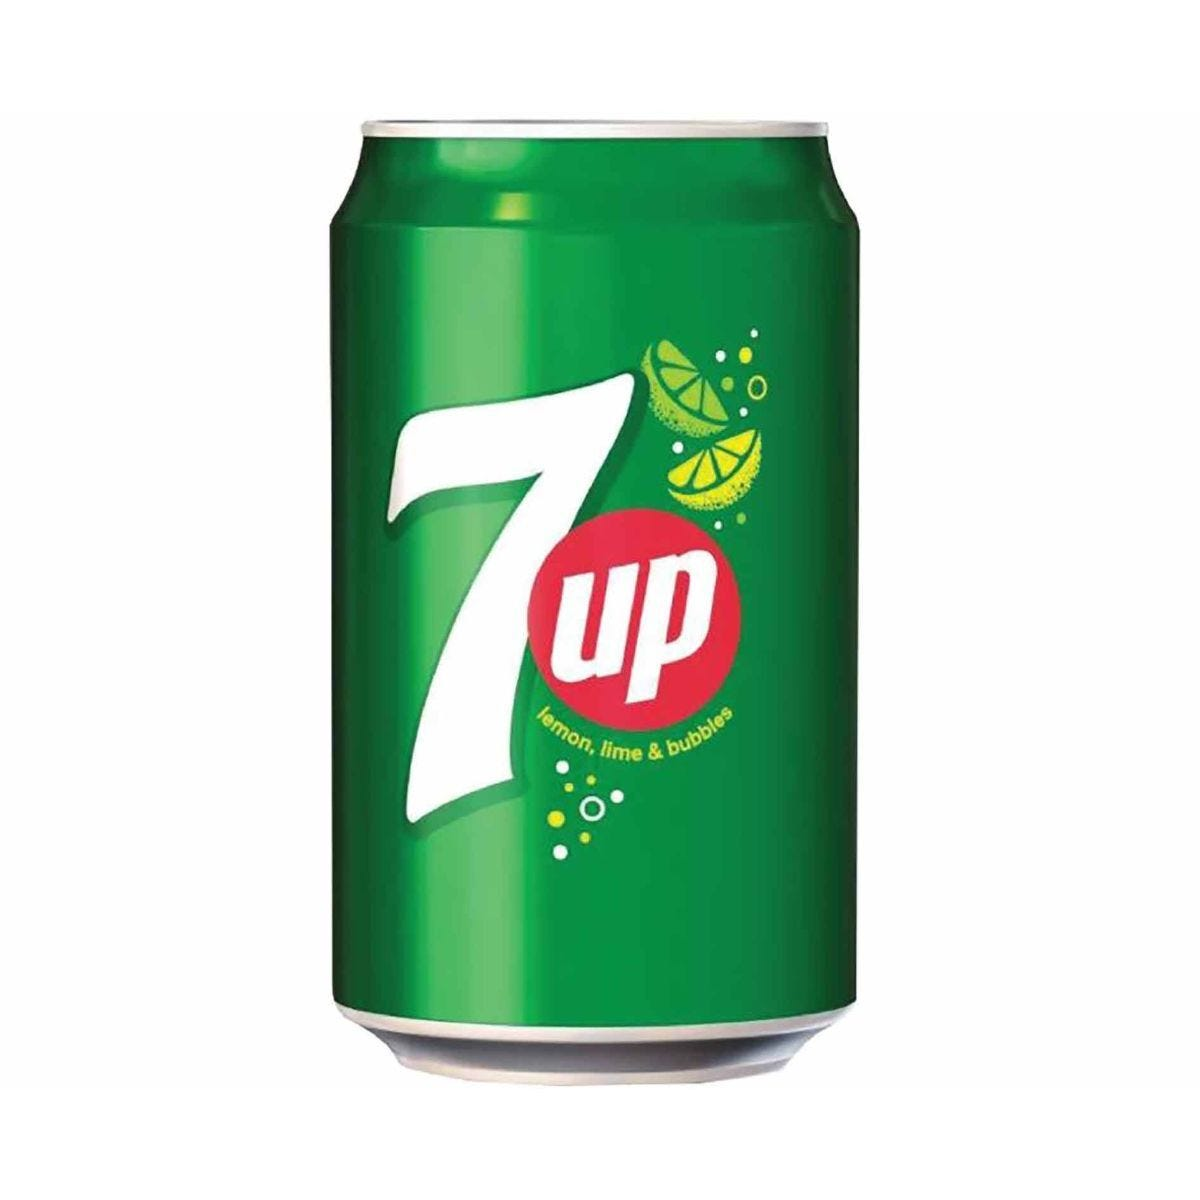 7-Up Lemon and Lime Canned 330ml Pack of 24